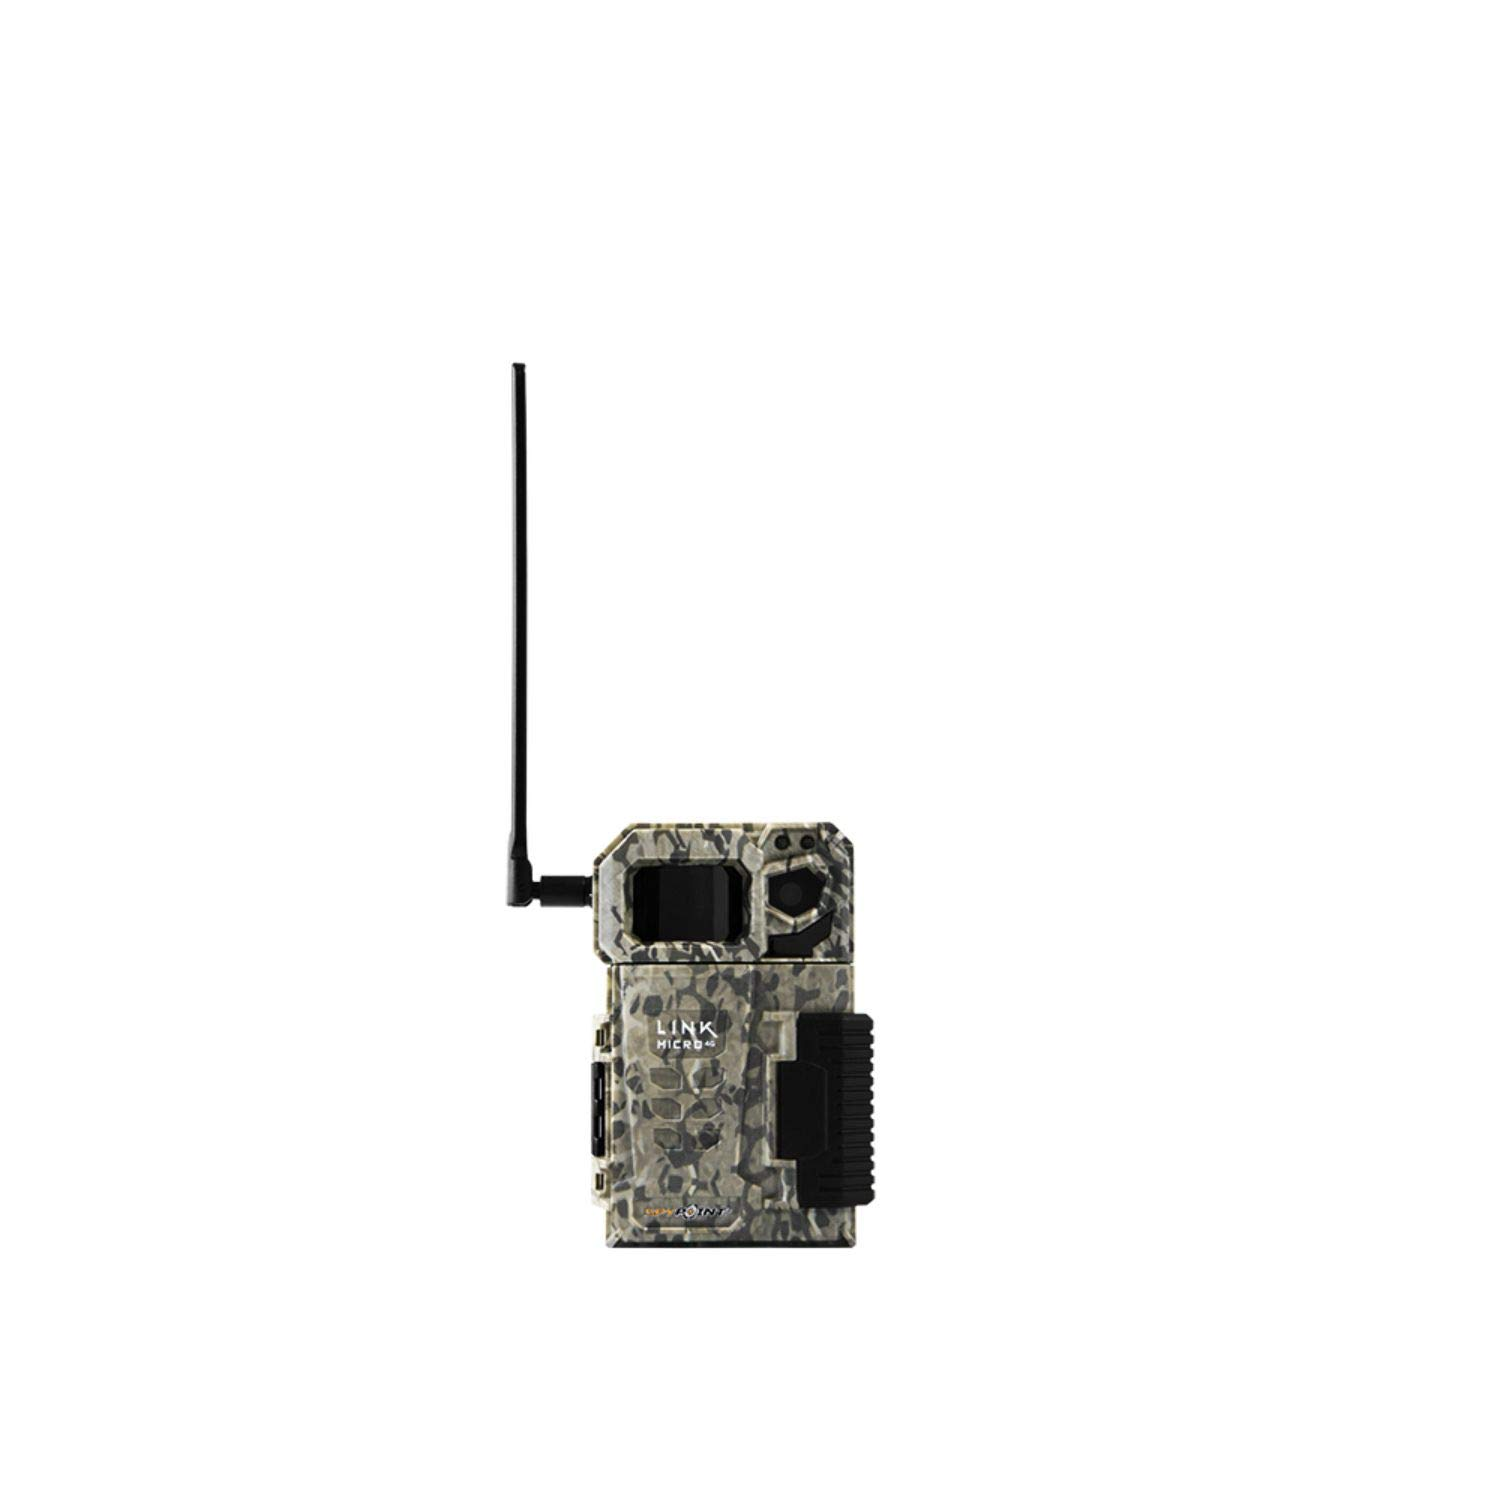 SPYPOINT Link Micro VZN Version (Smallest on The Market!) Wireless/Cellular Trail Camera, 4 Power LEDs, Fast 4G Photo Transmission w/Preactivated SIM, Fully Configurable via App by SPYPOINT